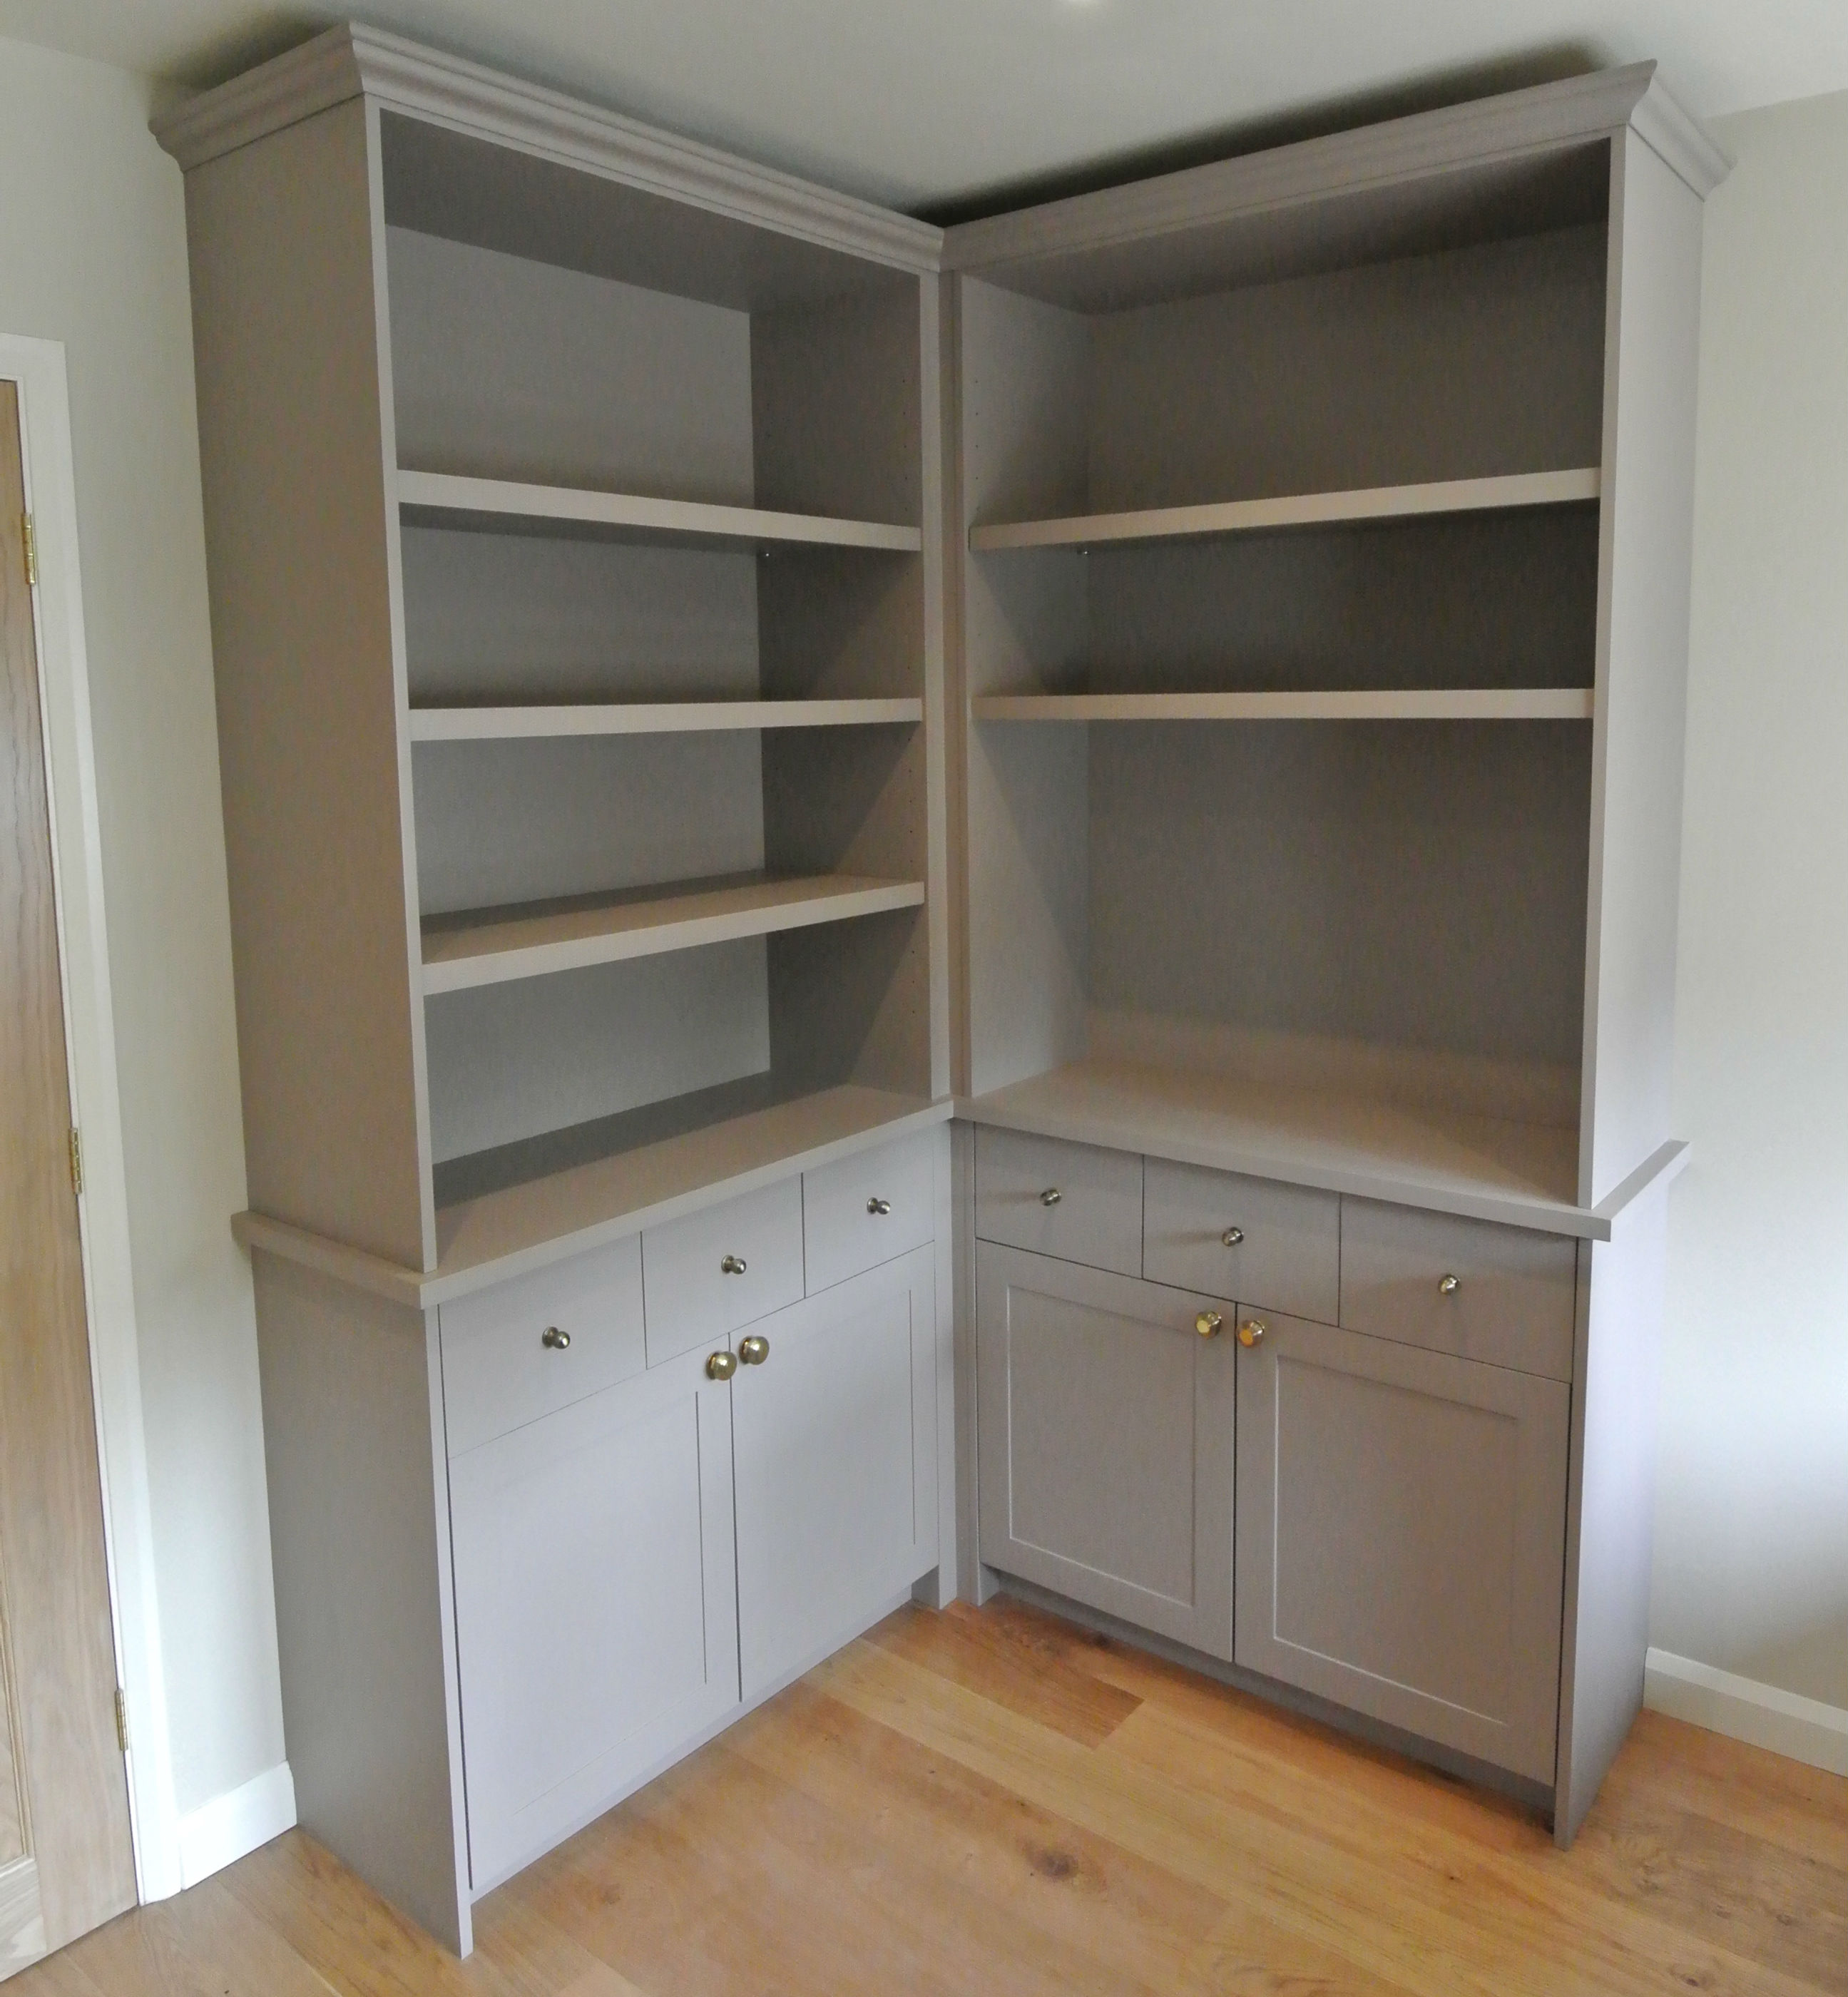 Bookshelves - Bespoke Cabinetry